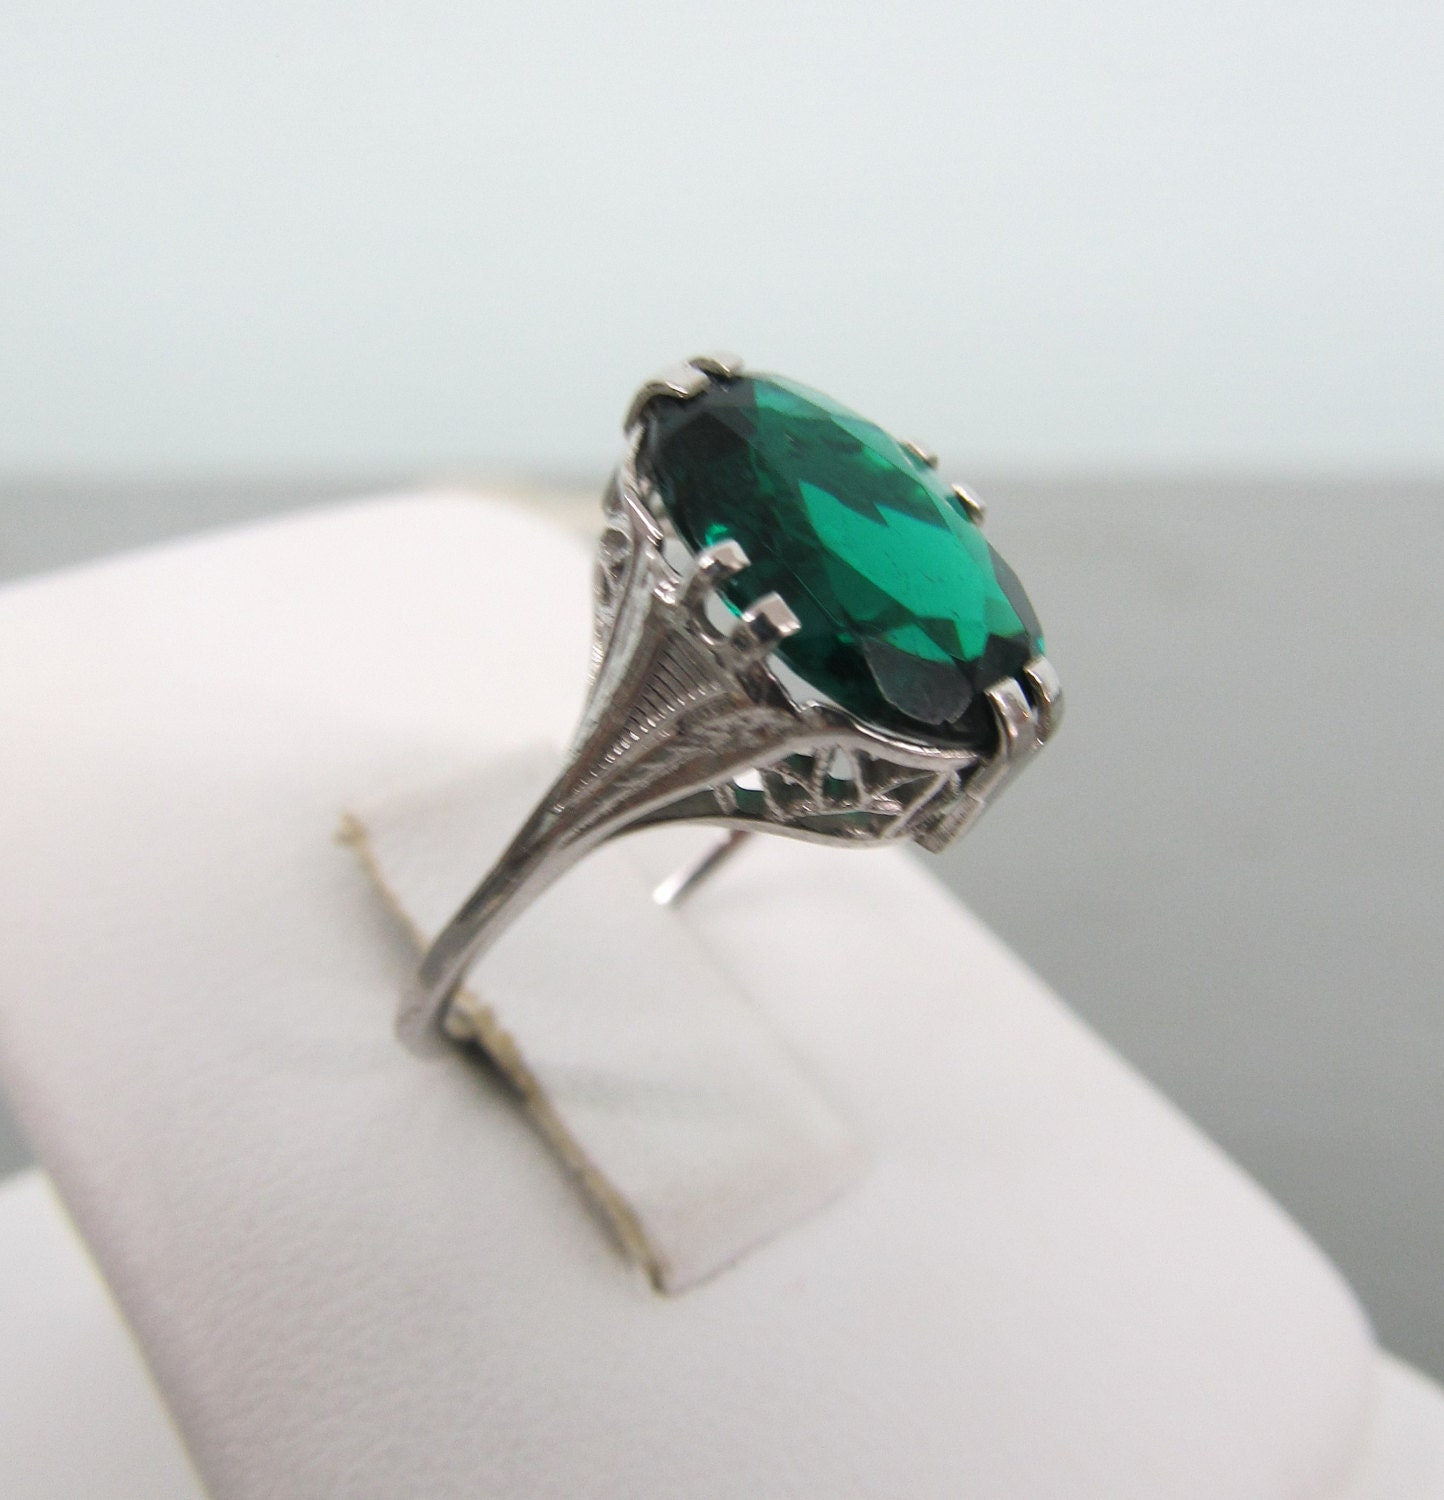 Vintage Engagement Rings At LowCost Prices All